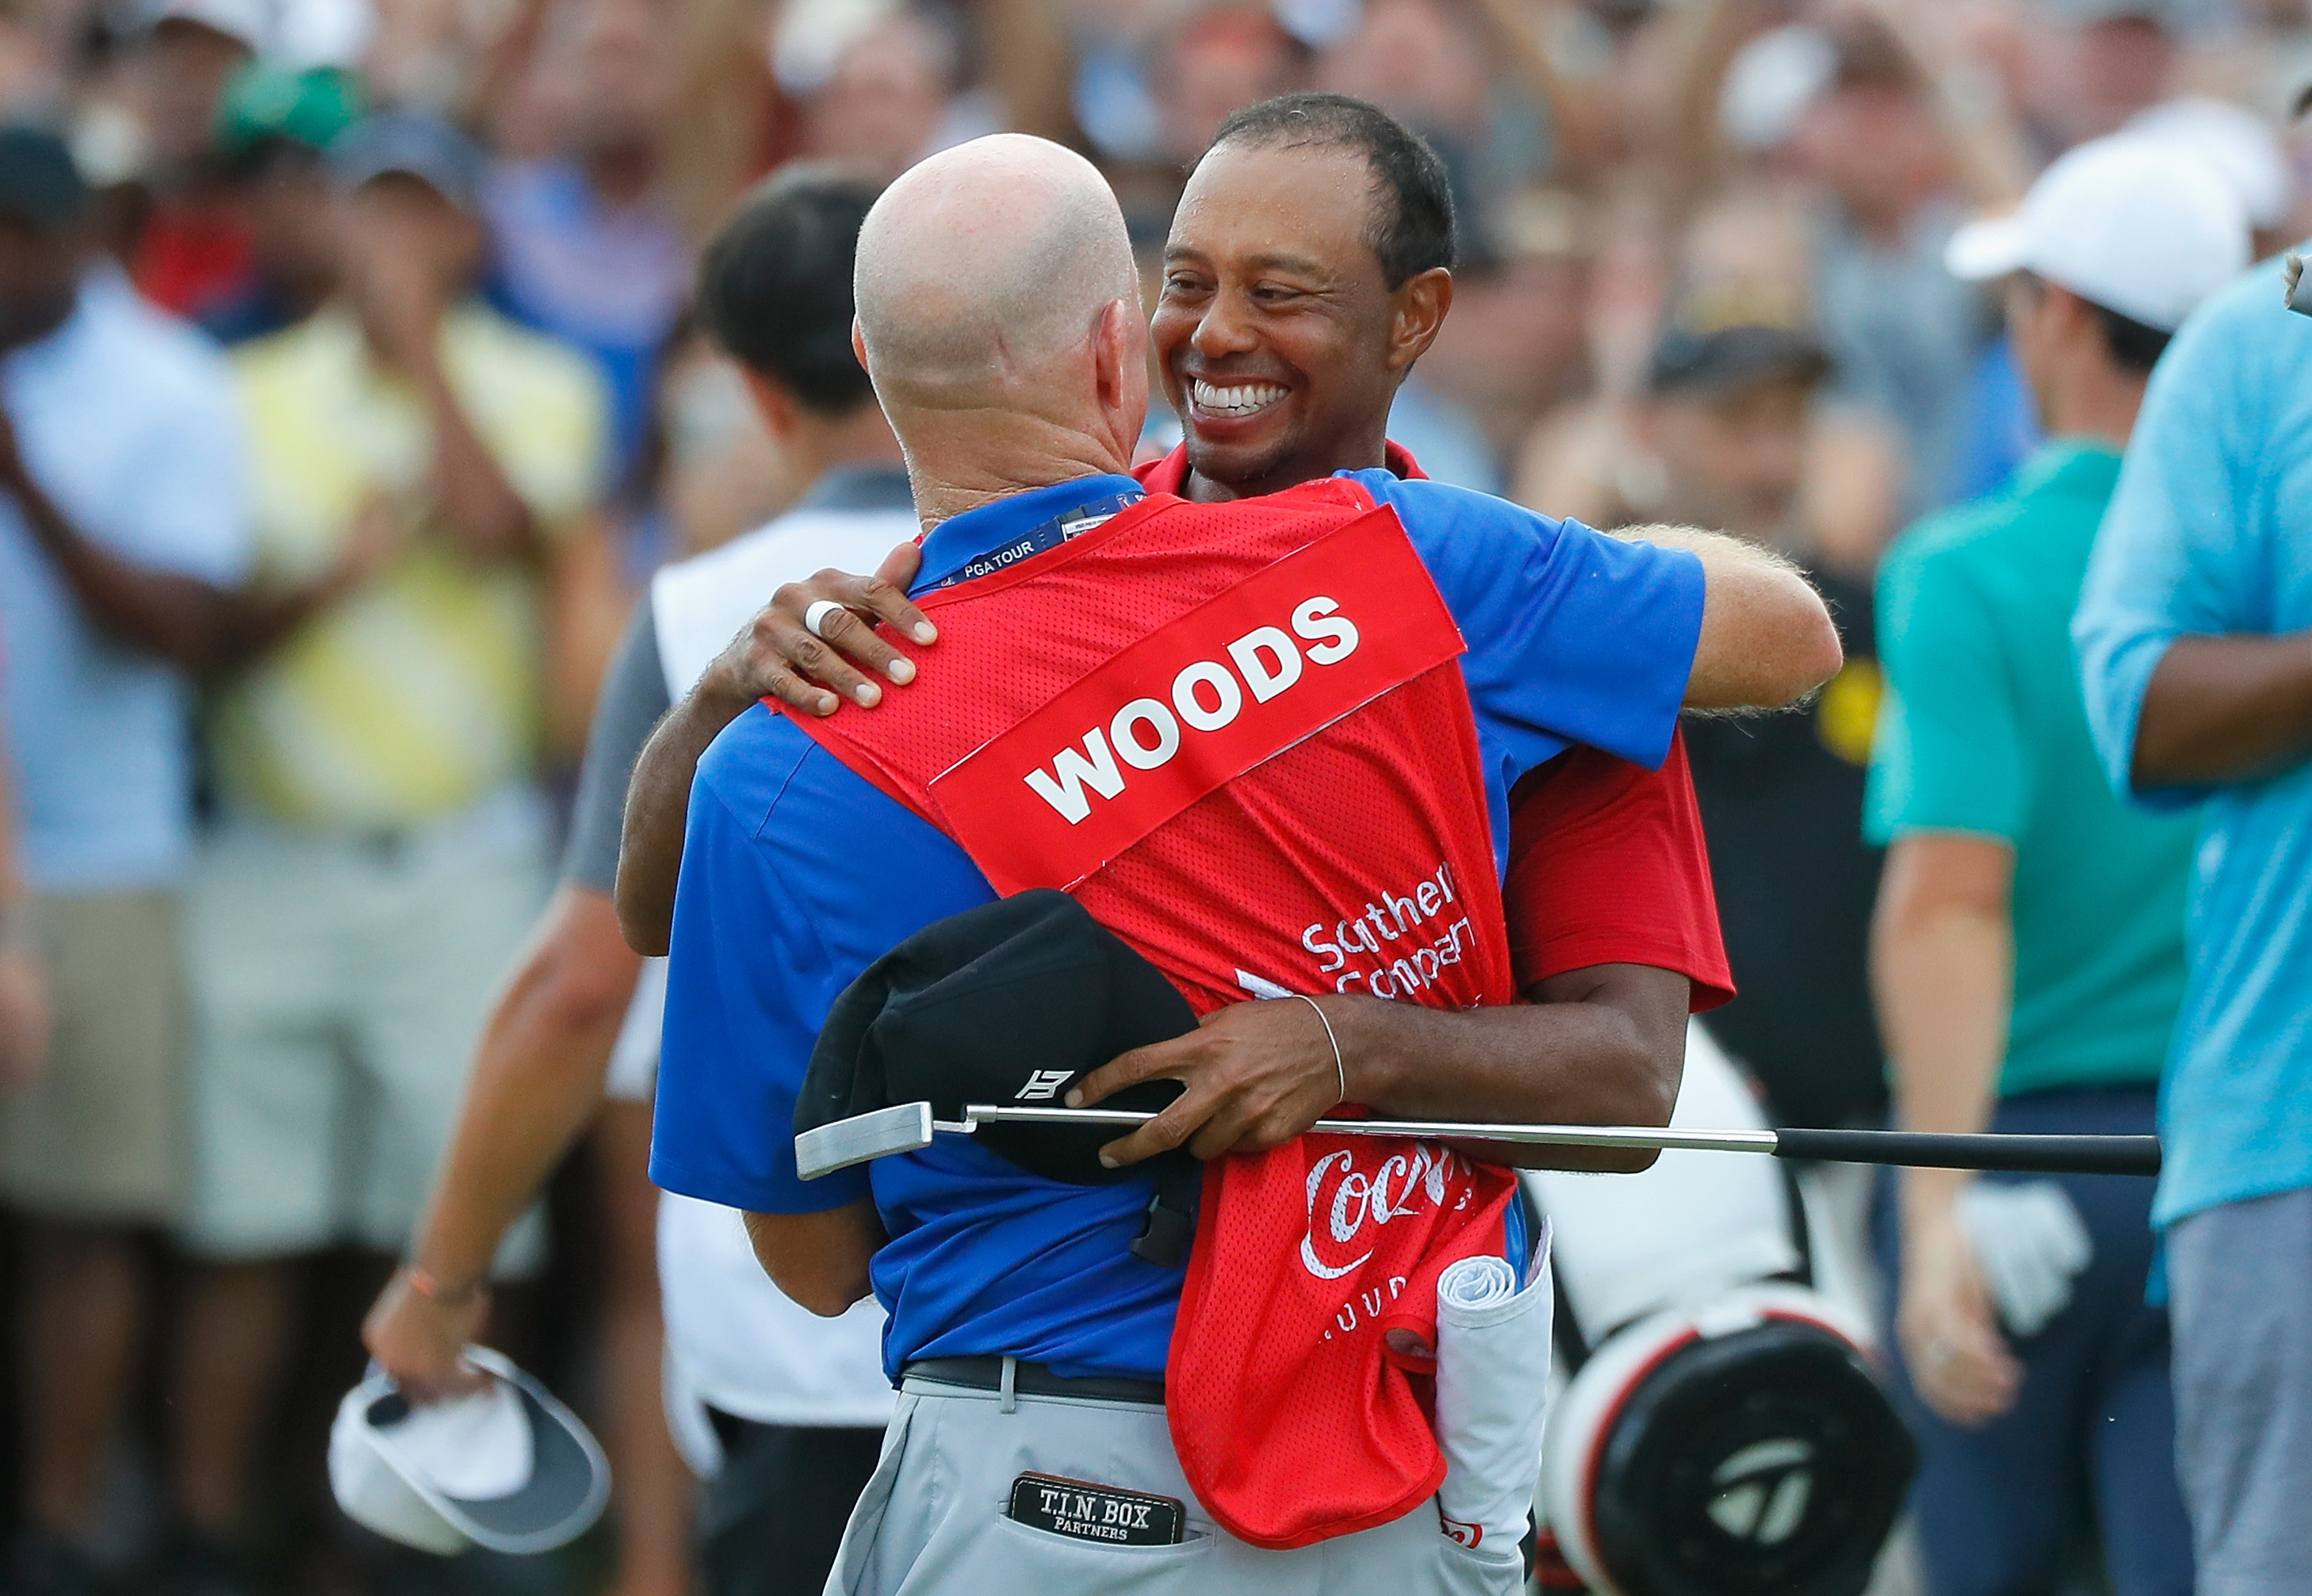 ATLANTA, GA - SEPTEMBER 23: Tiger Woods of the United States celebrates with caddie Joe LaCava after making a par on the 18th green to win the TOUR Championship at East Lake Golf Club on September 23, 2018 in Atlanta, Georgia. (Photo by Kevin C. Cox/Getty Images)